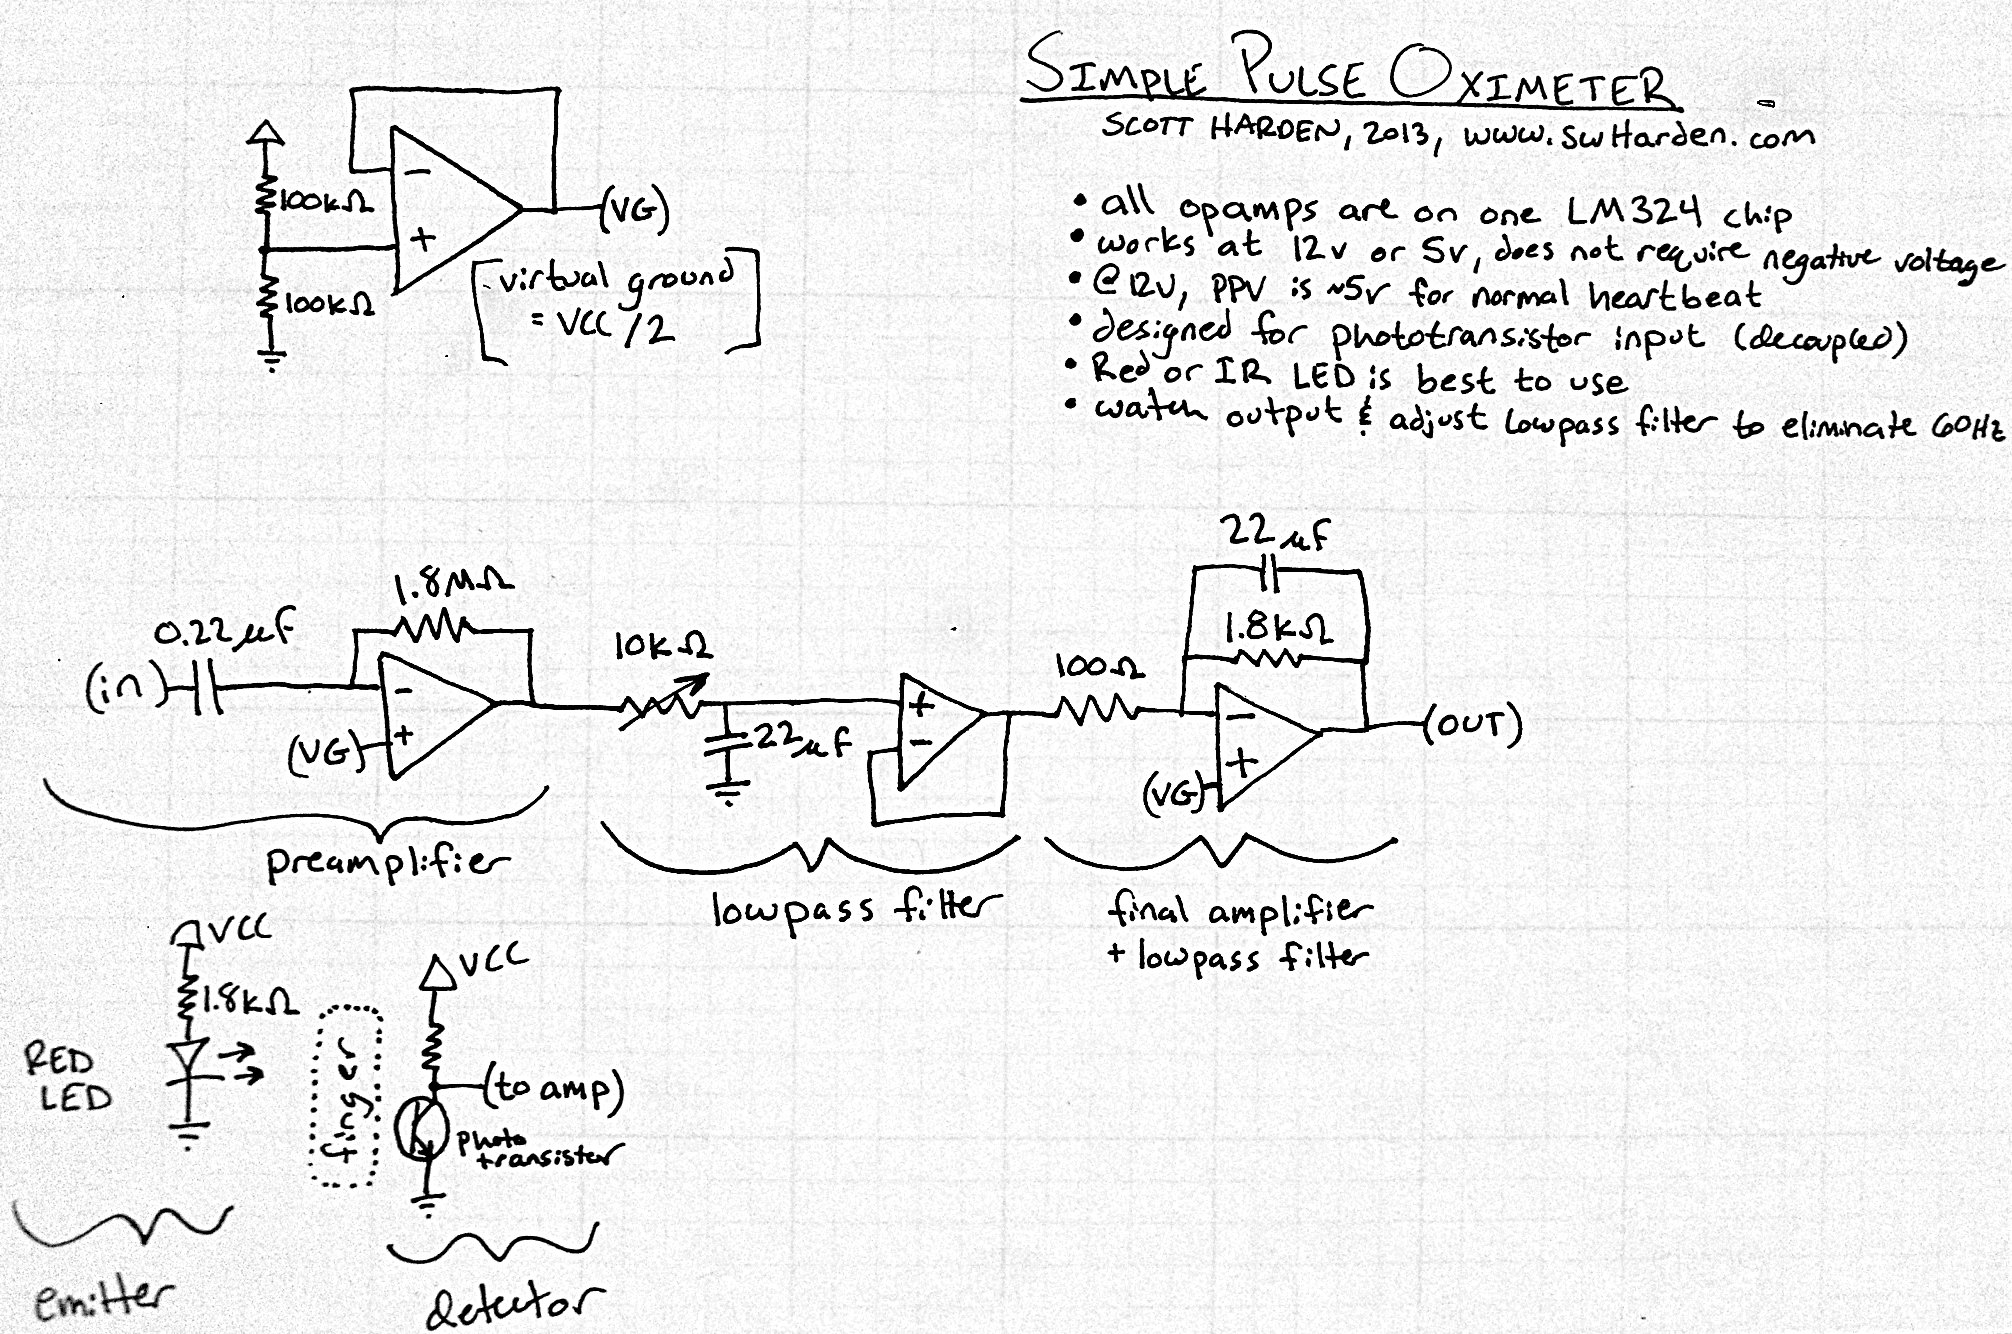 Electronic Circuits Page 276 Cut Off By Lm324 Circuit Diagram Auto Lead Acid 555 And Thumbnail Pulse Meter